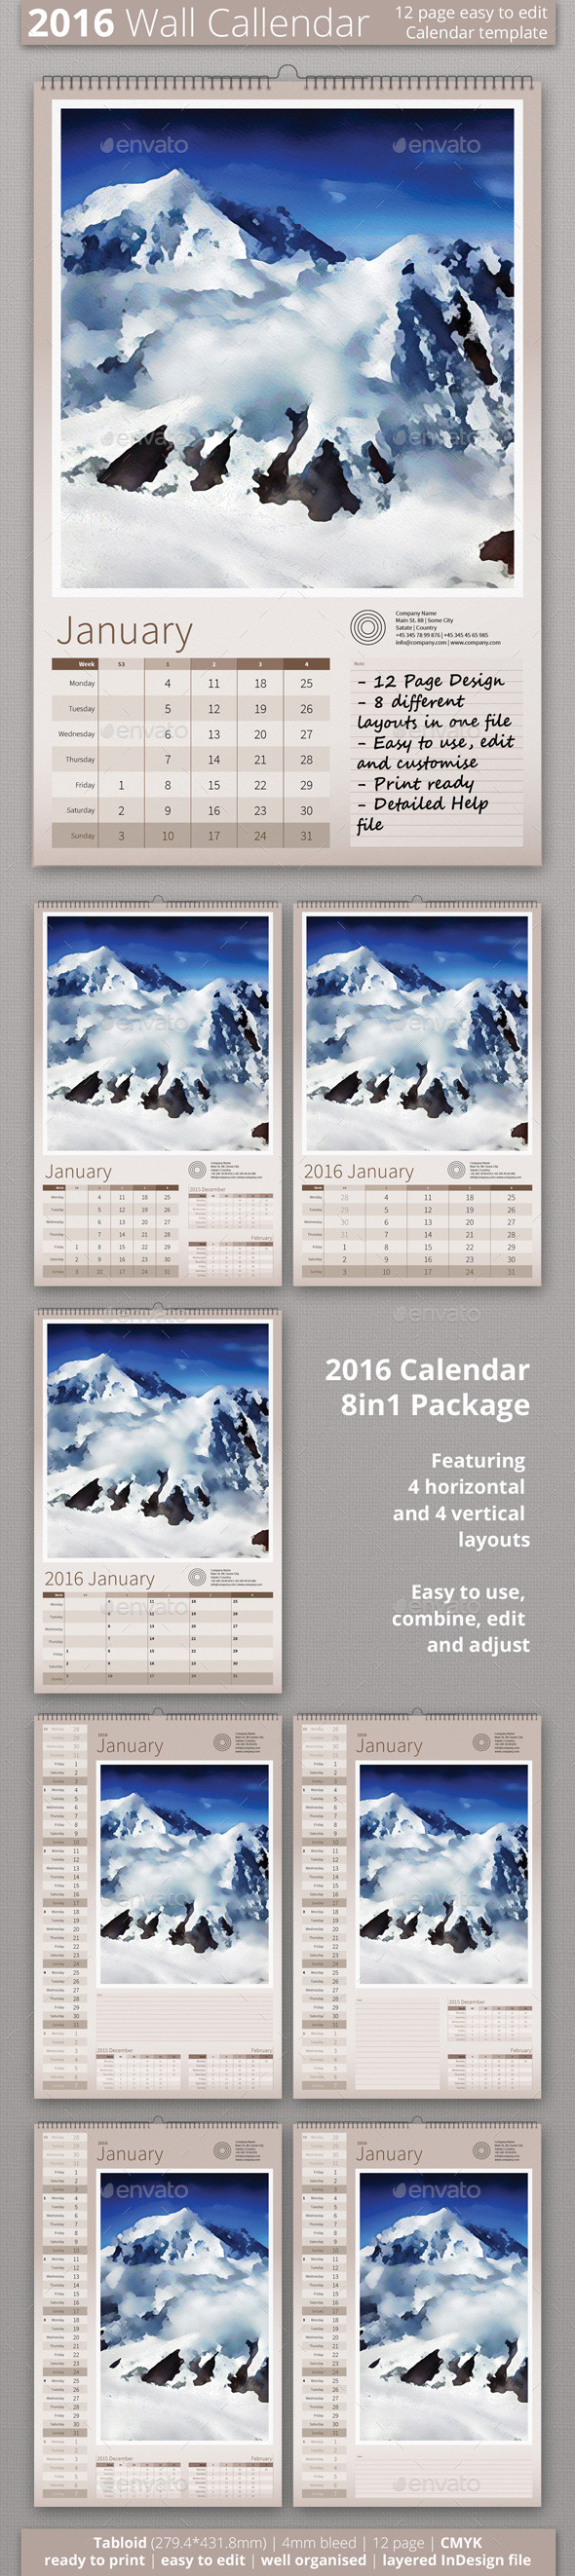 2016 Wall Calendar - Calendars Stationery